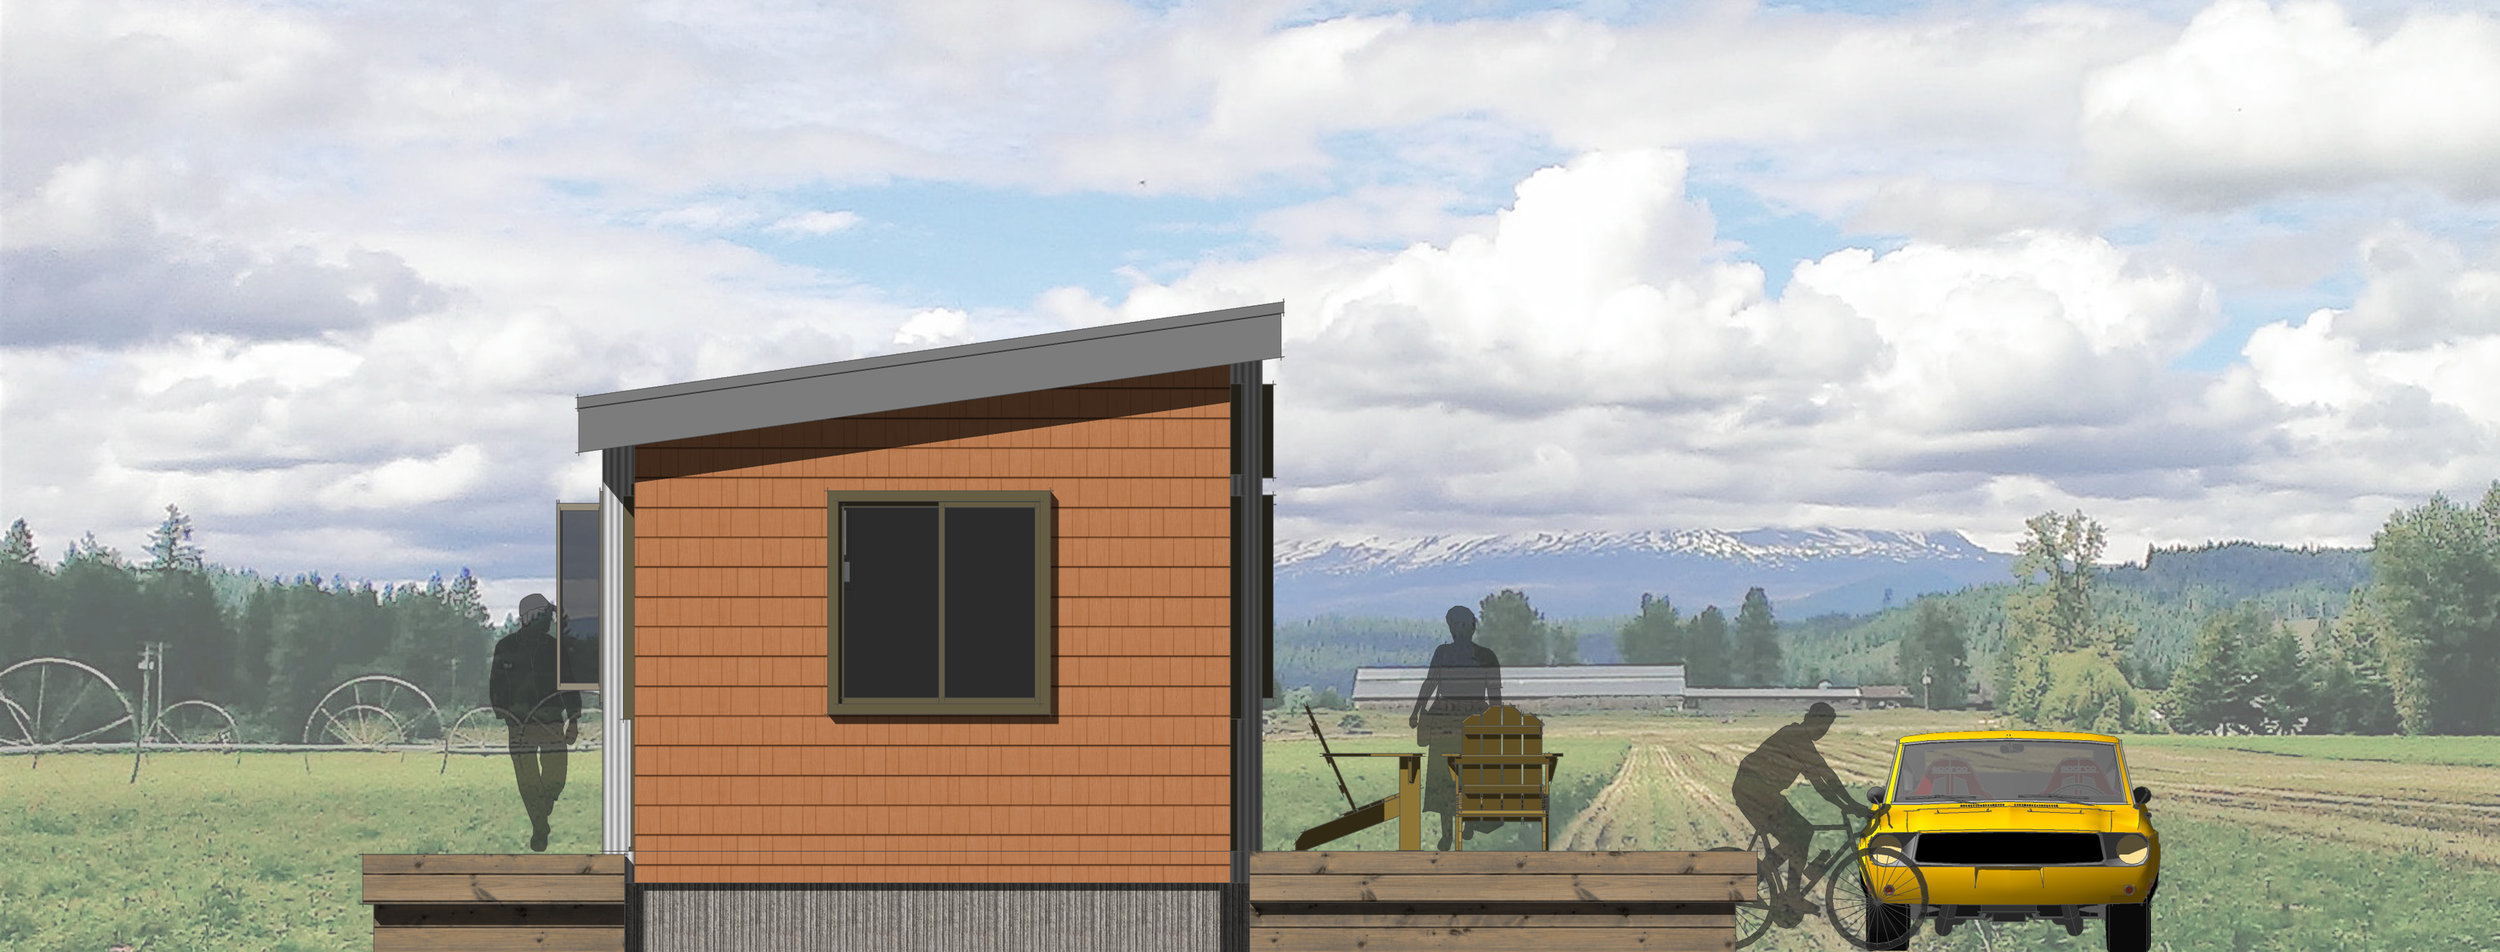 Ideabox_Elevations_nw 1.jpg